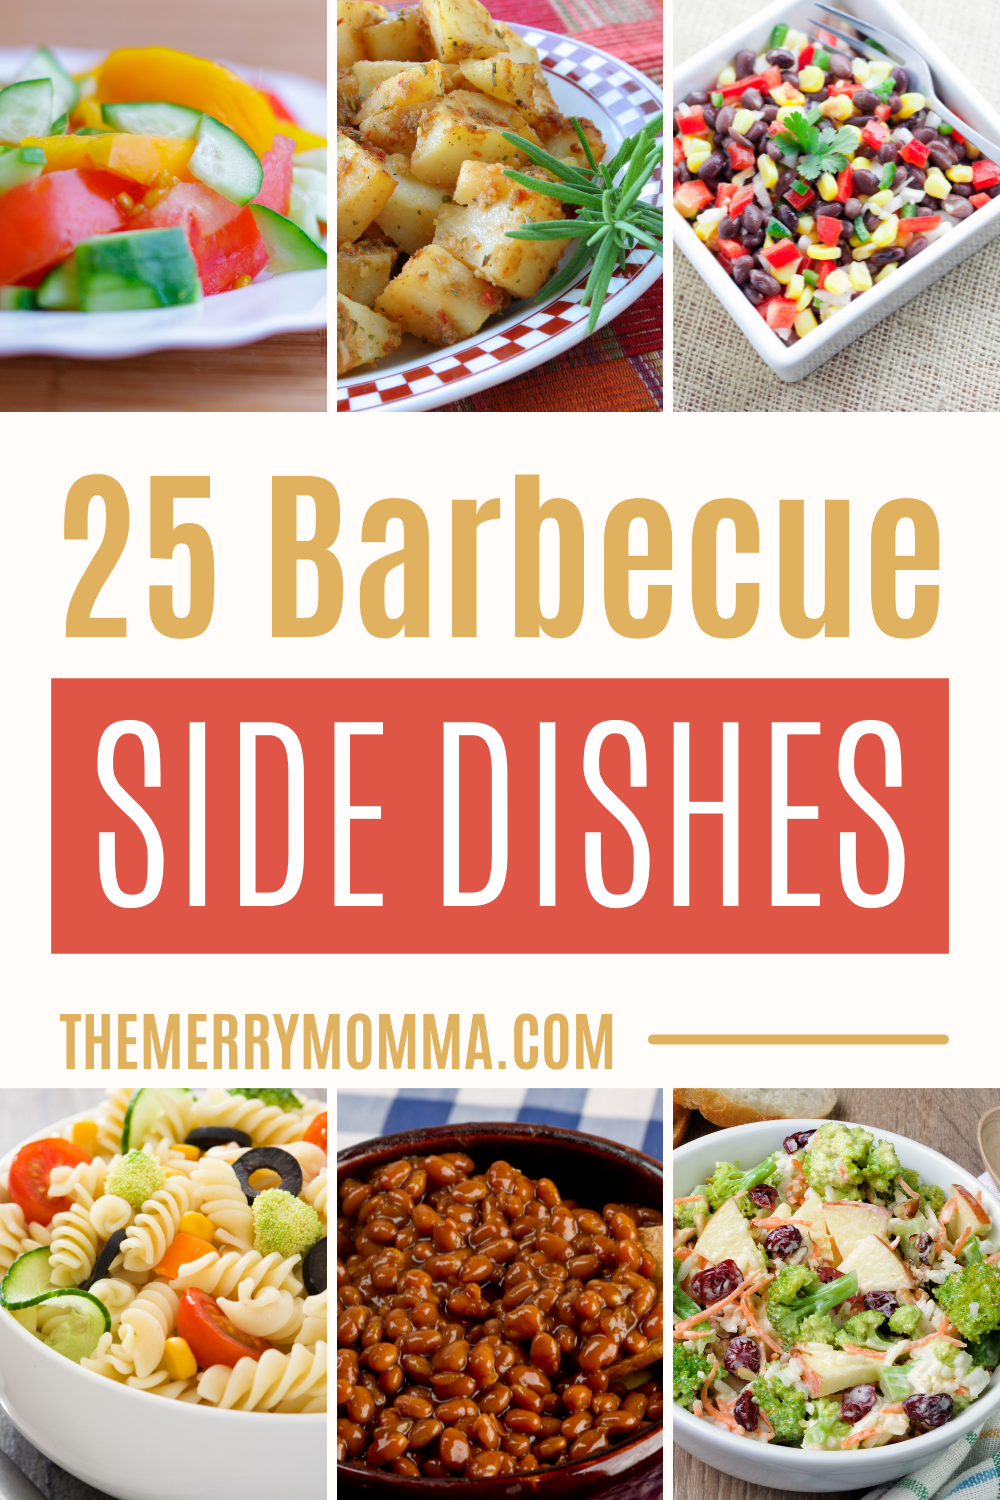 25 Barbecue Side Dishes to Kick Your Cookout Up a Notch!